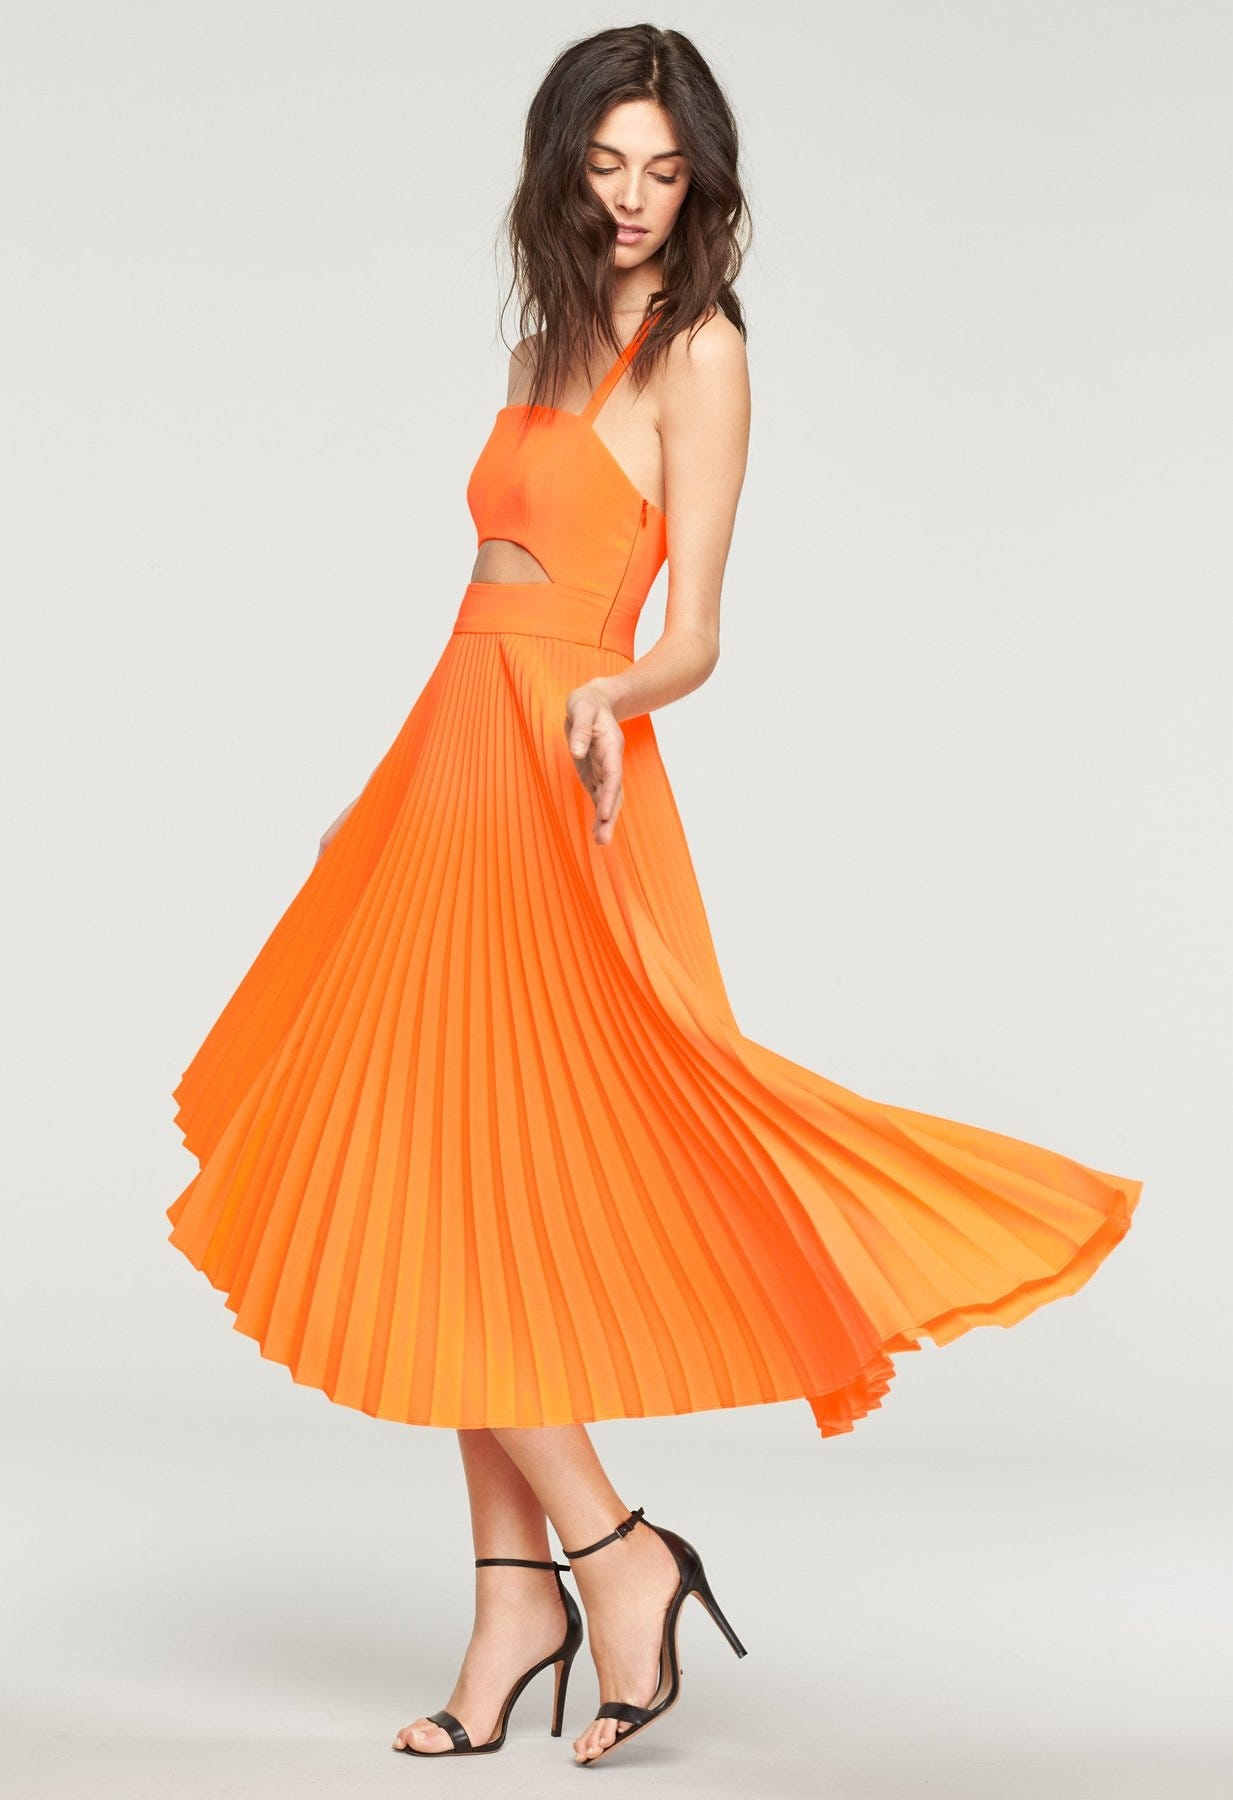 364730ea80 How To Wear Orange Clothing - Summer 2018 Color Trend